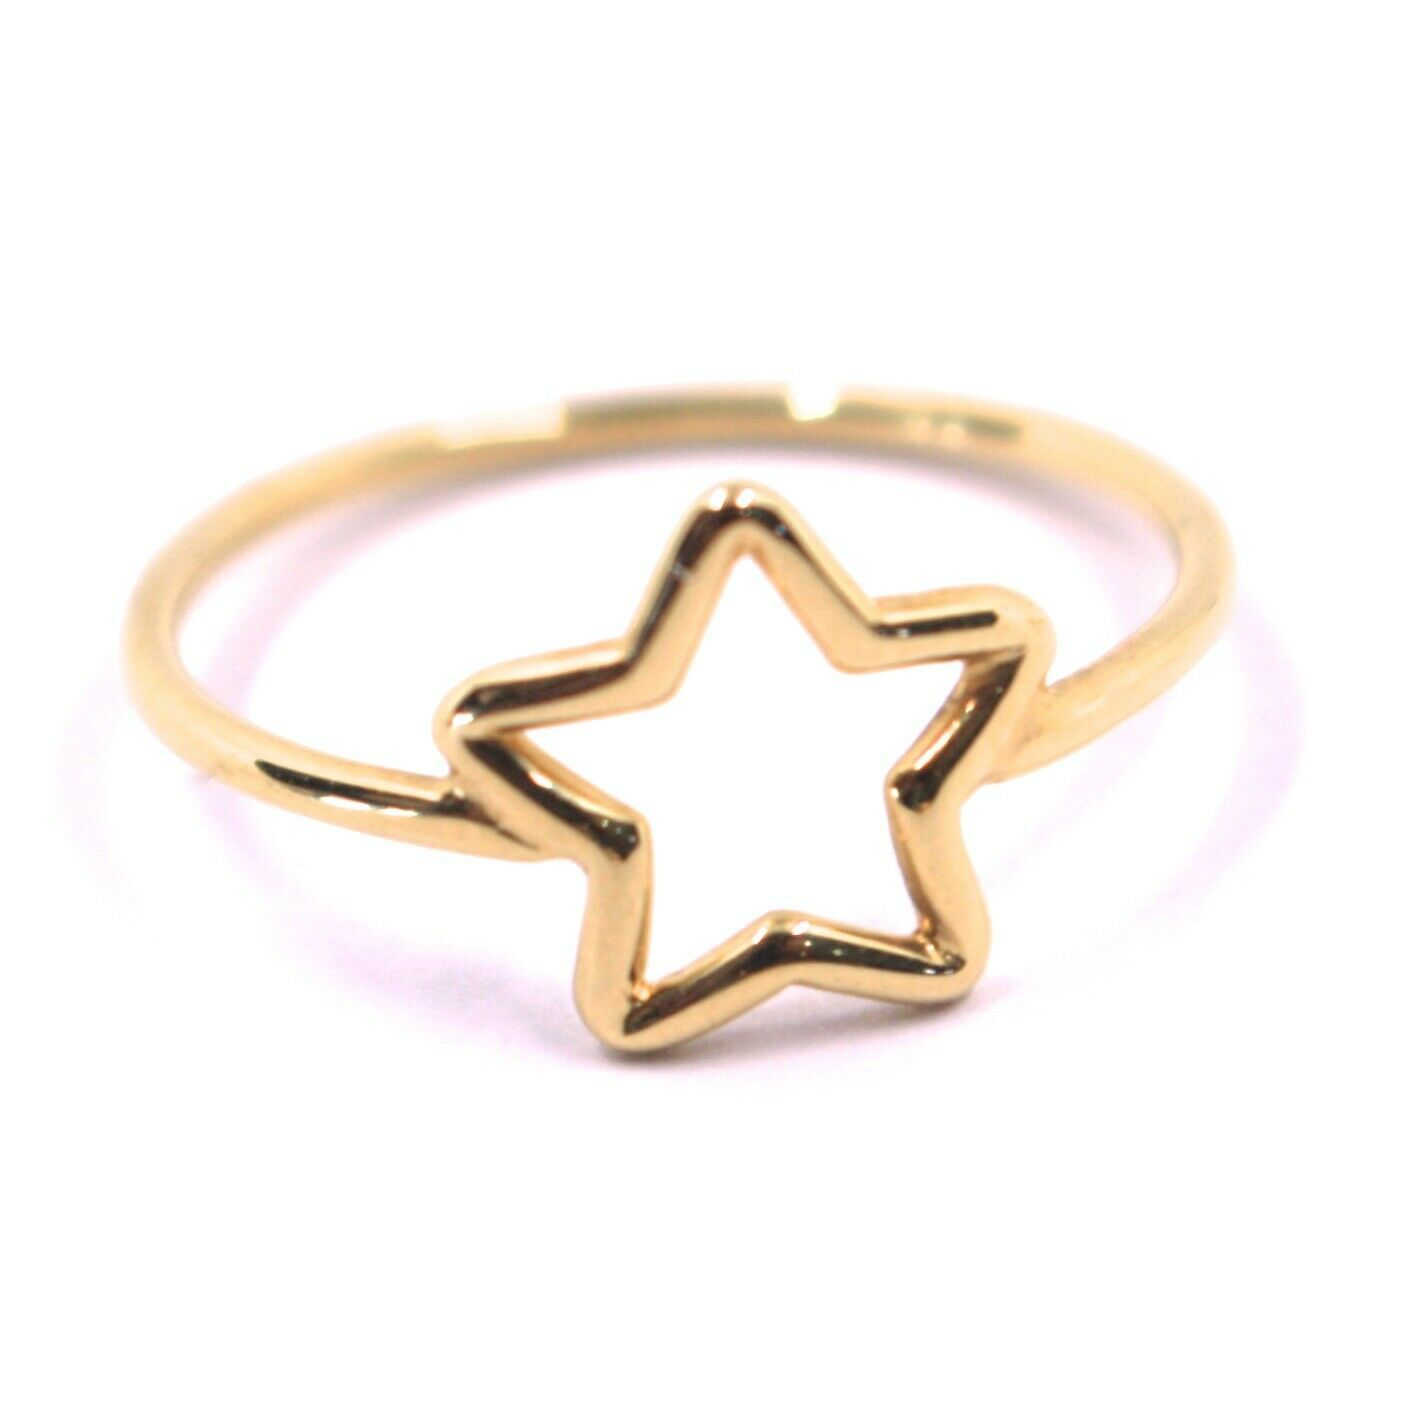 SOLID 18K ROSE GOLD STAR RING, 10mm DIAMETER STAR CENTRAL, MADE IN ITALY